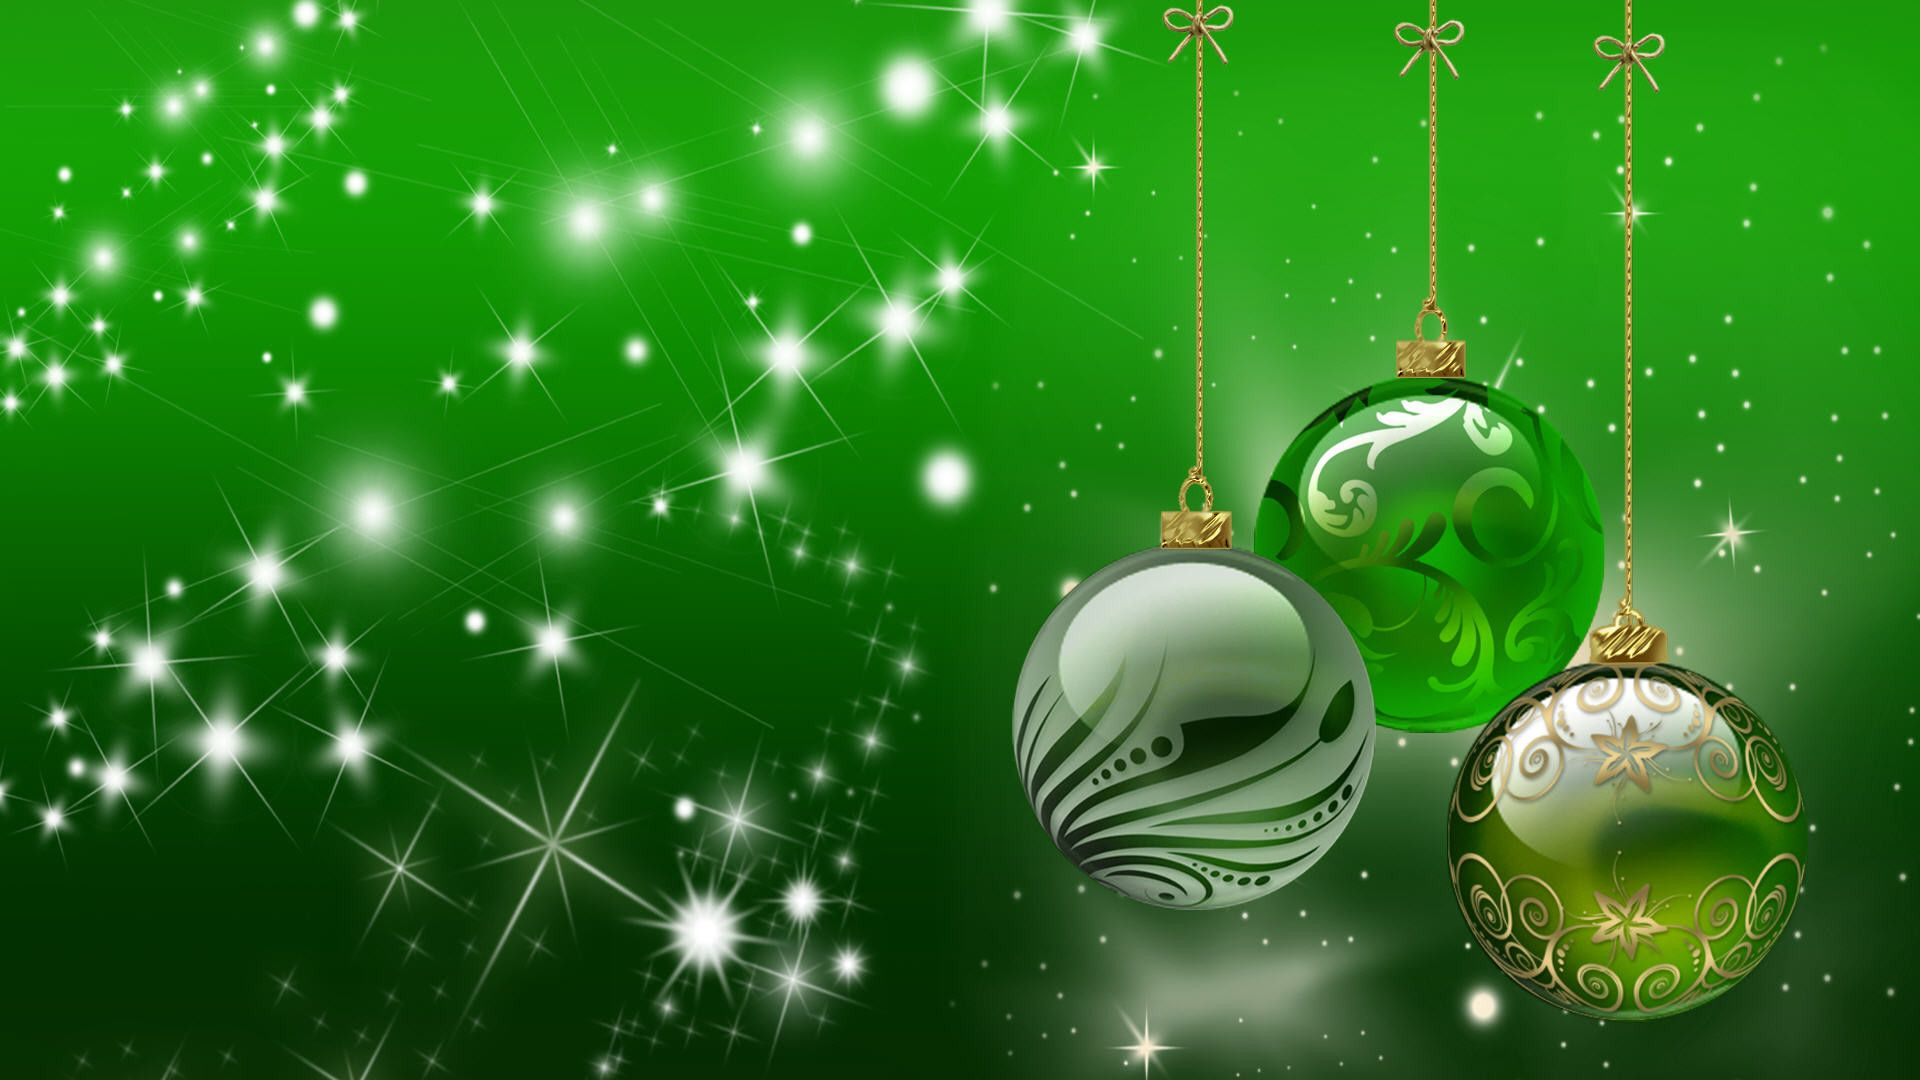 Res 1920x1080 Green Holiday Backgrounds 18367 Christmas Desktop Holiday Wallpaper Christmas Wallpaper Backgrounds